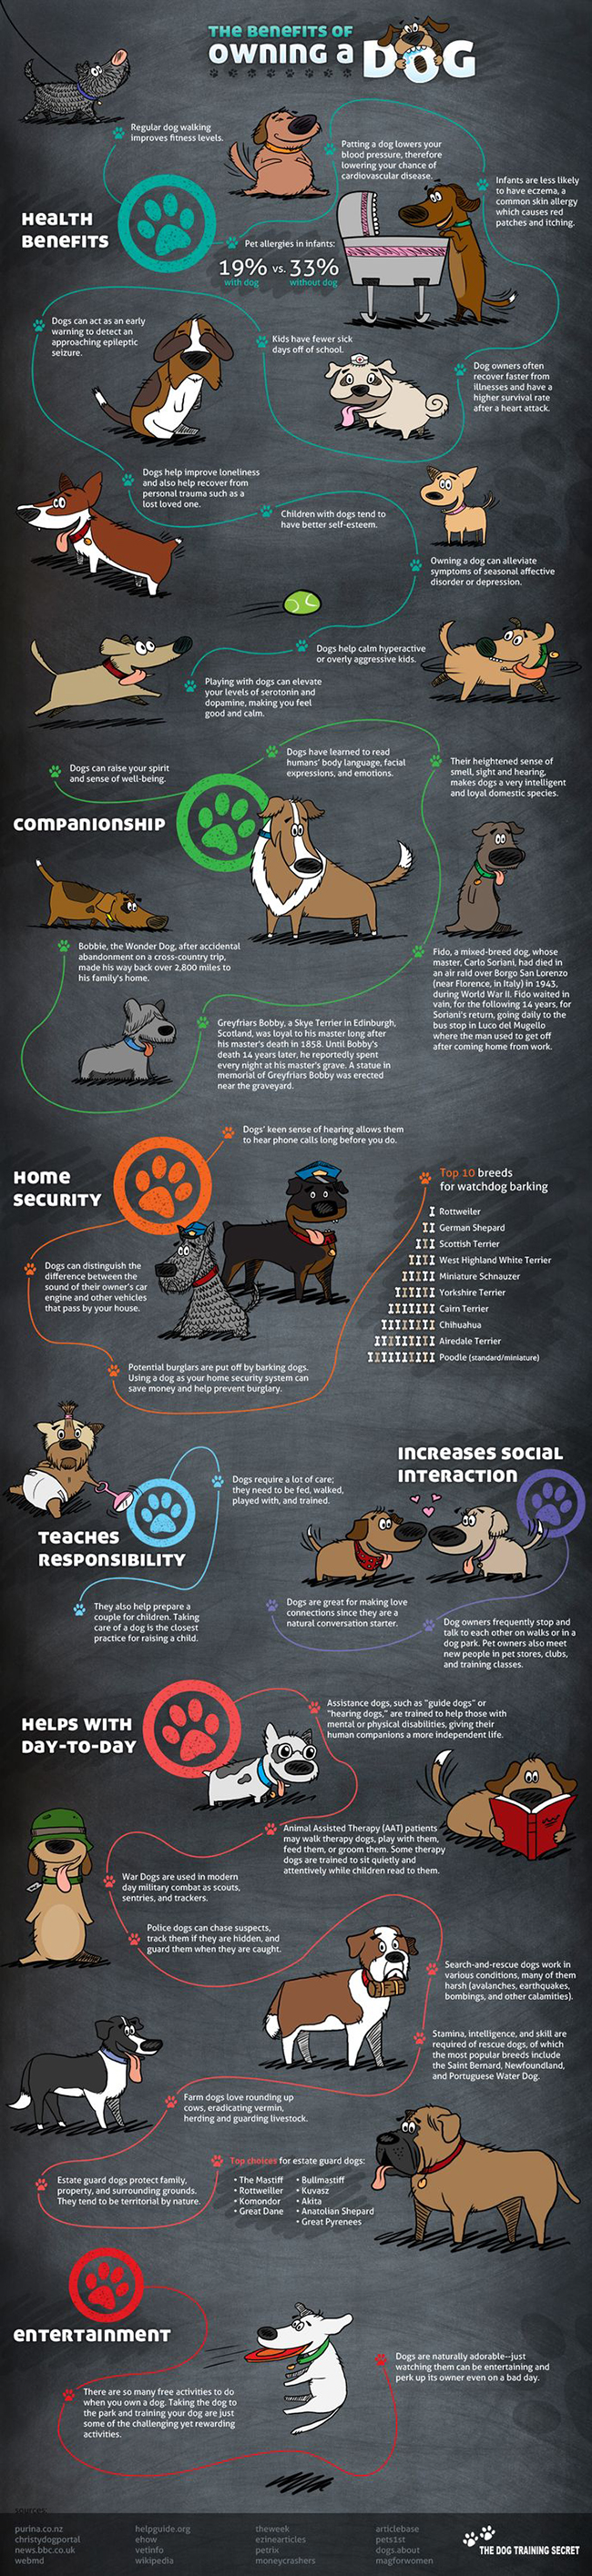 The 38 Benefits of Owning a Dog